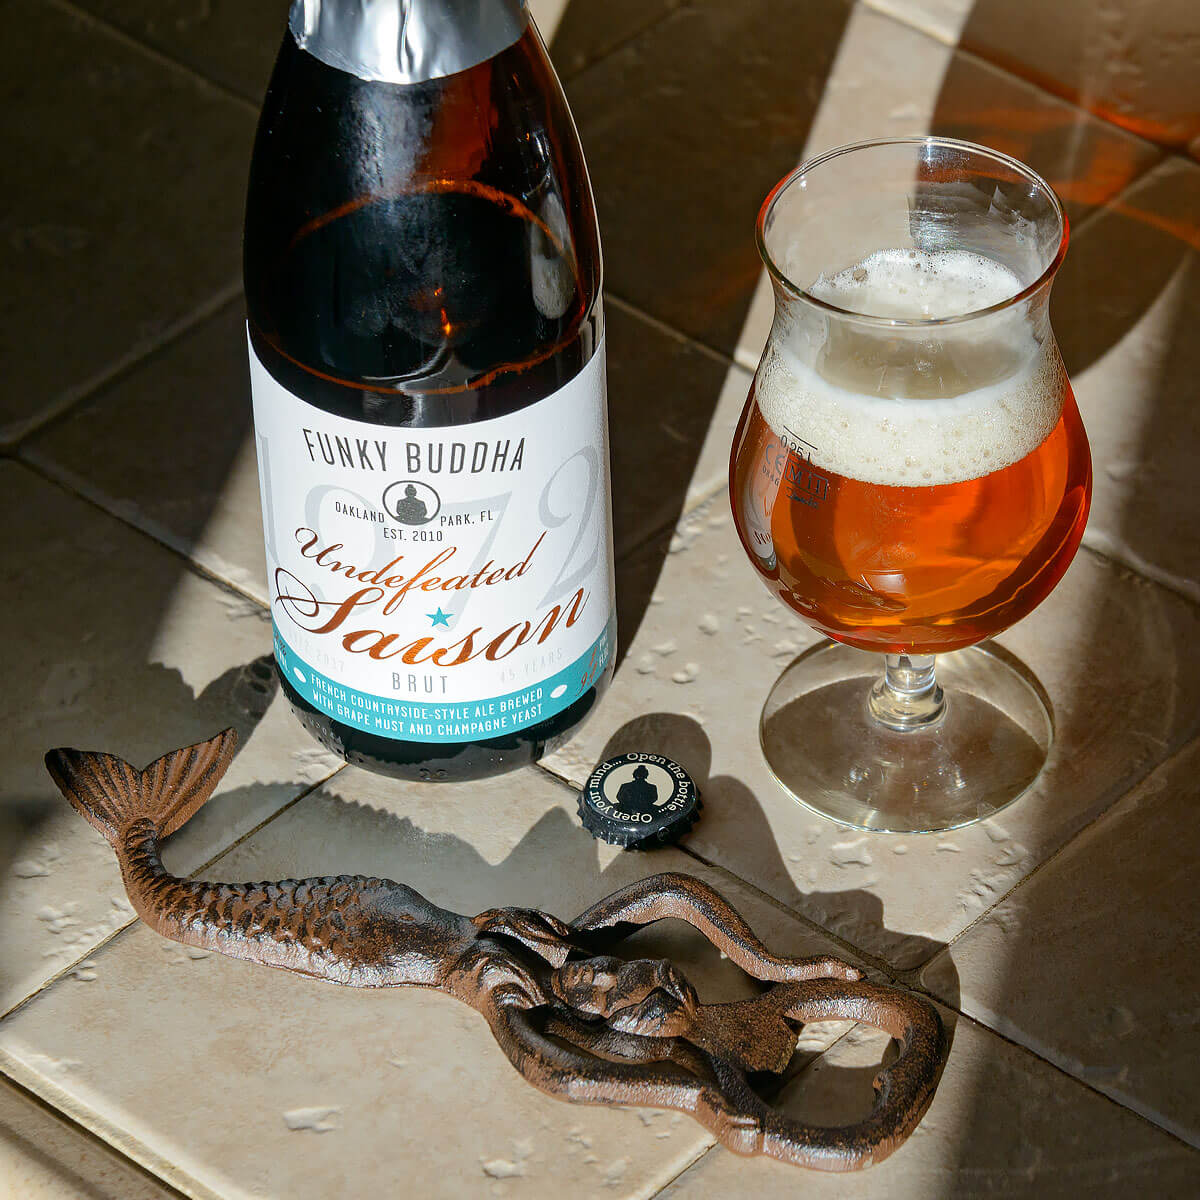 Undefeated Saison, a Belgian-style Saison by Funky Buddha Brewery